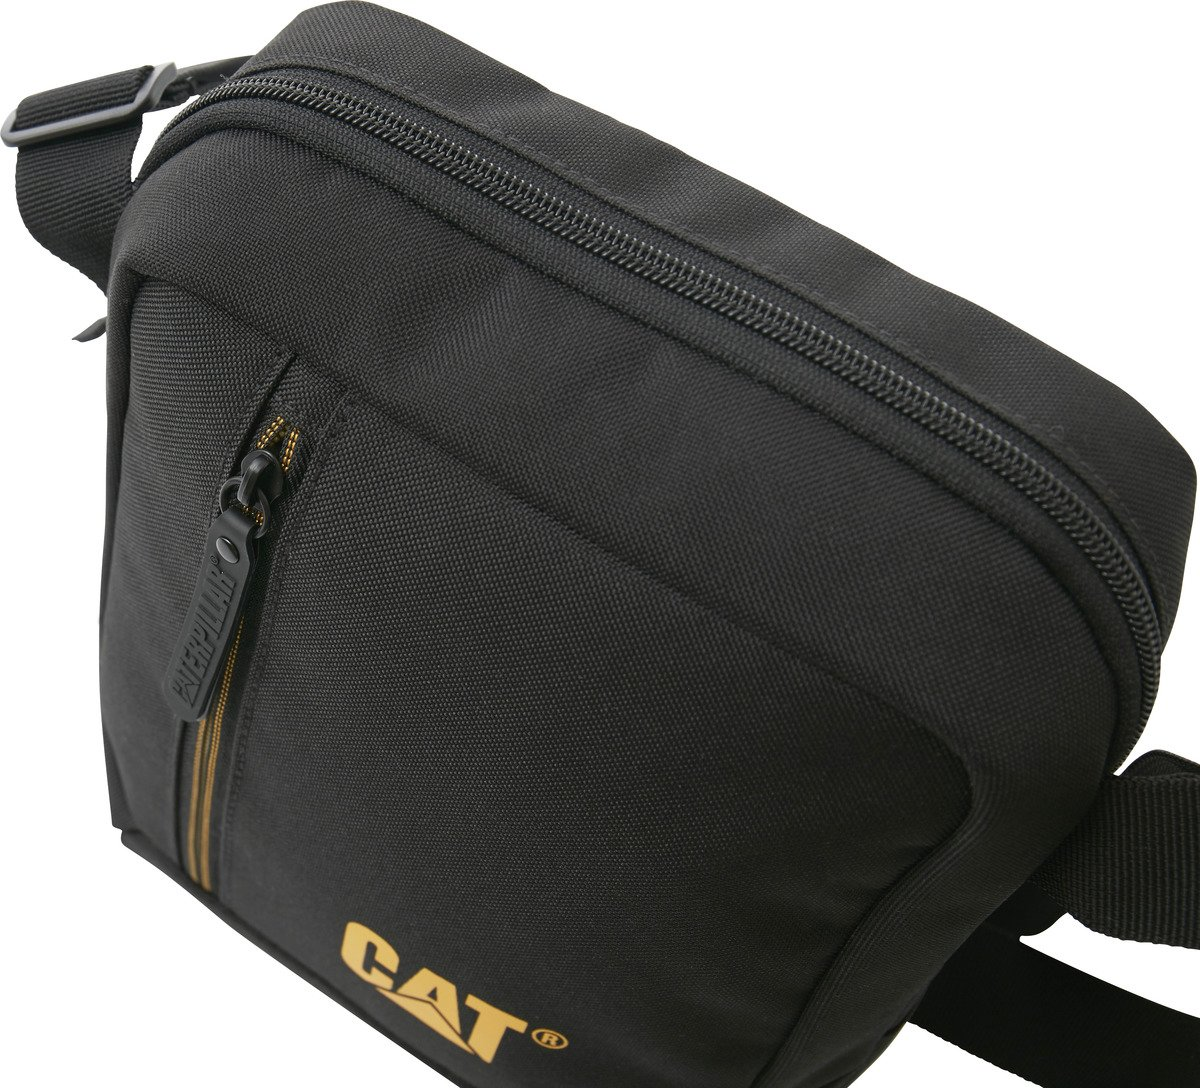 "Torba CAT Caterpillar na tablet do 10""  The Project czarny"